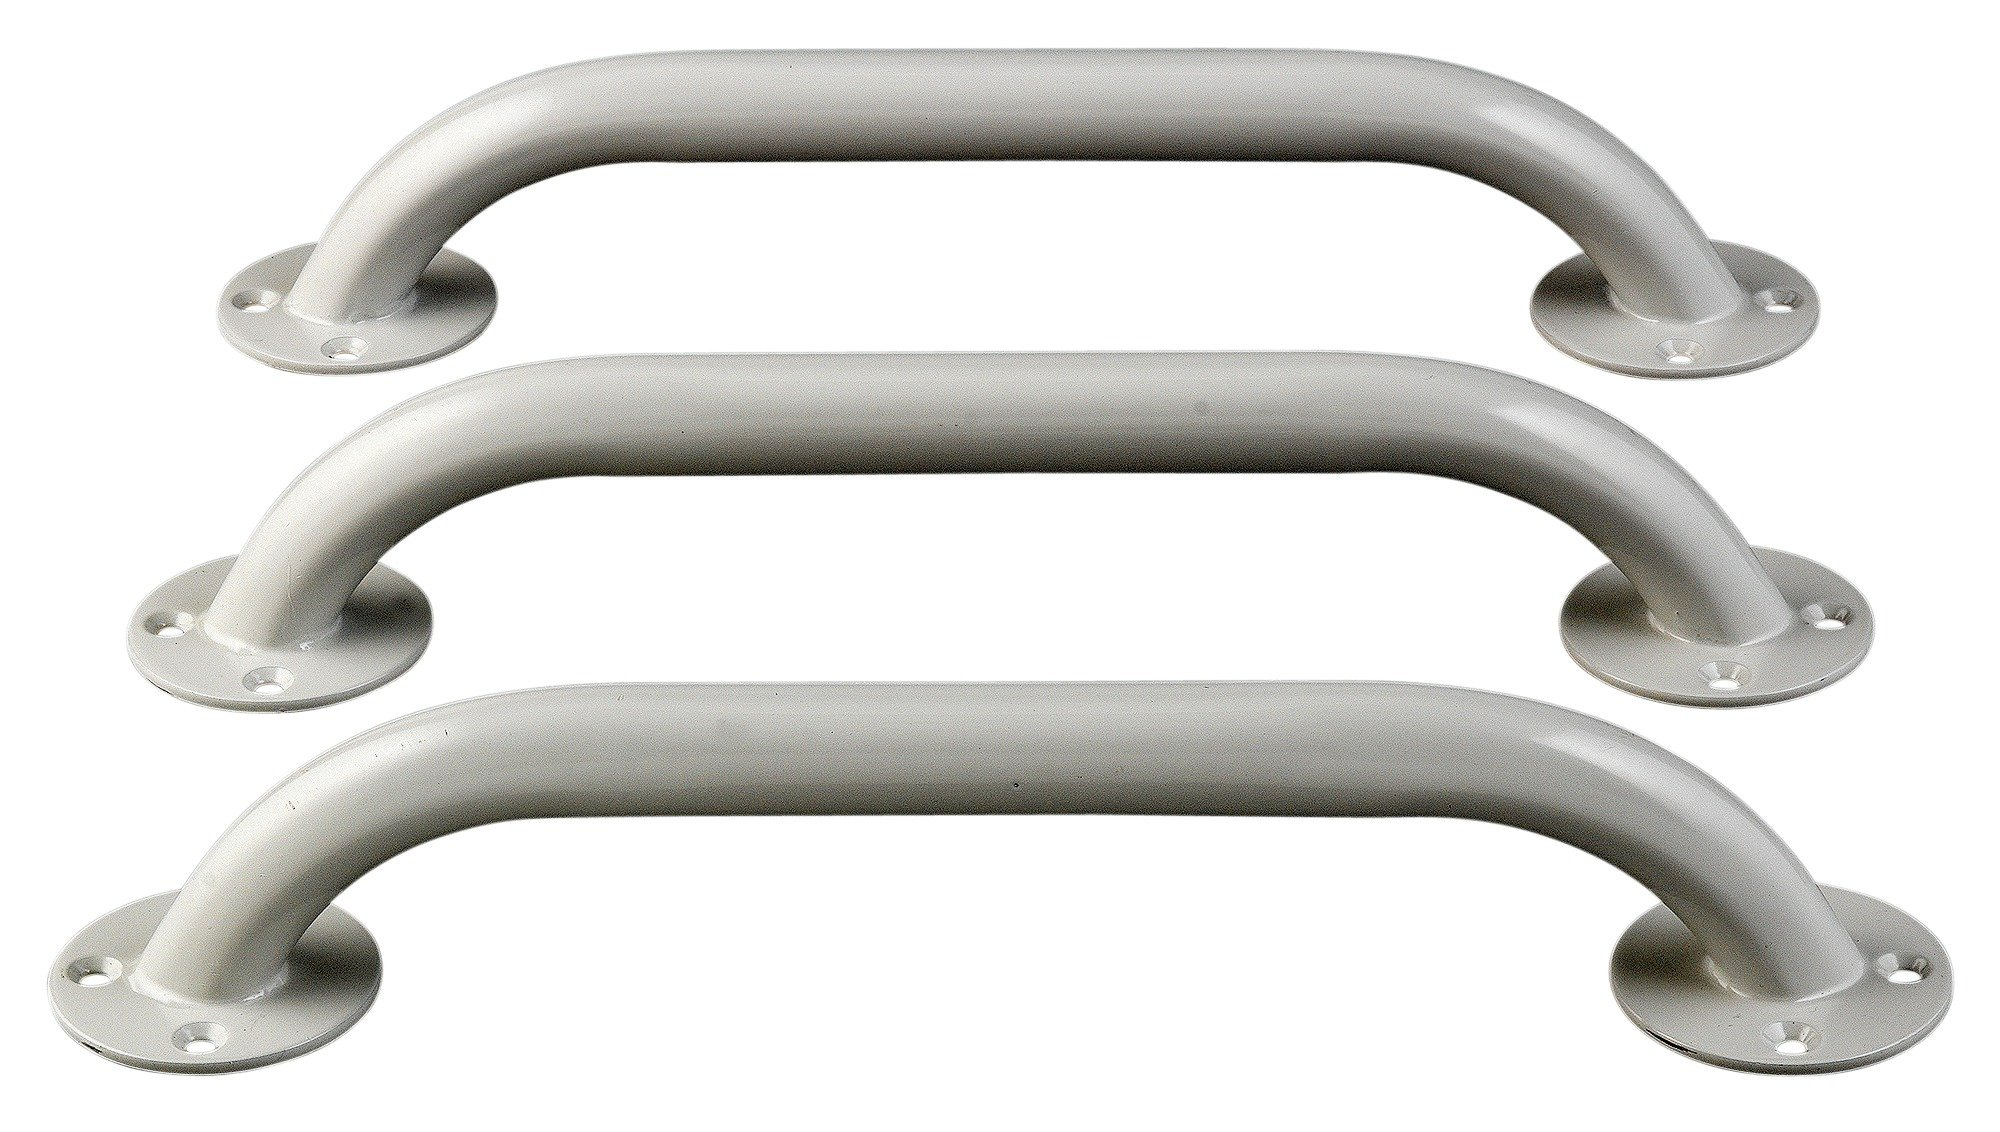 Argos - White Grab Bars - Pack of 3